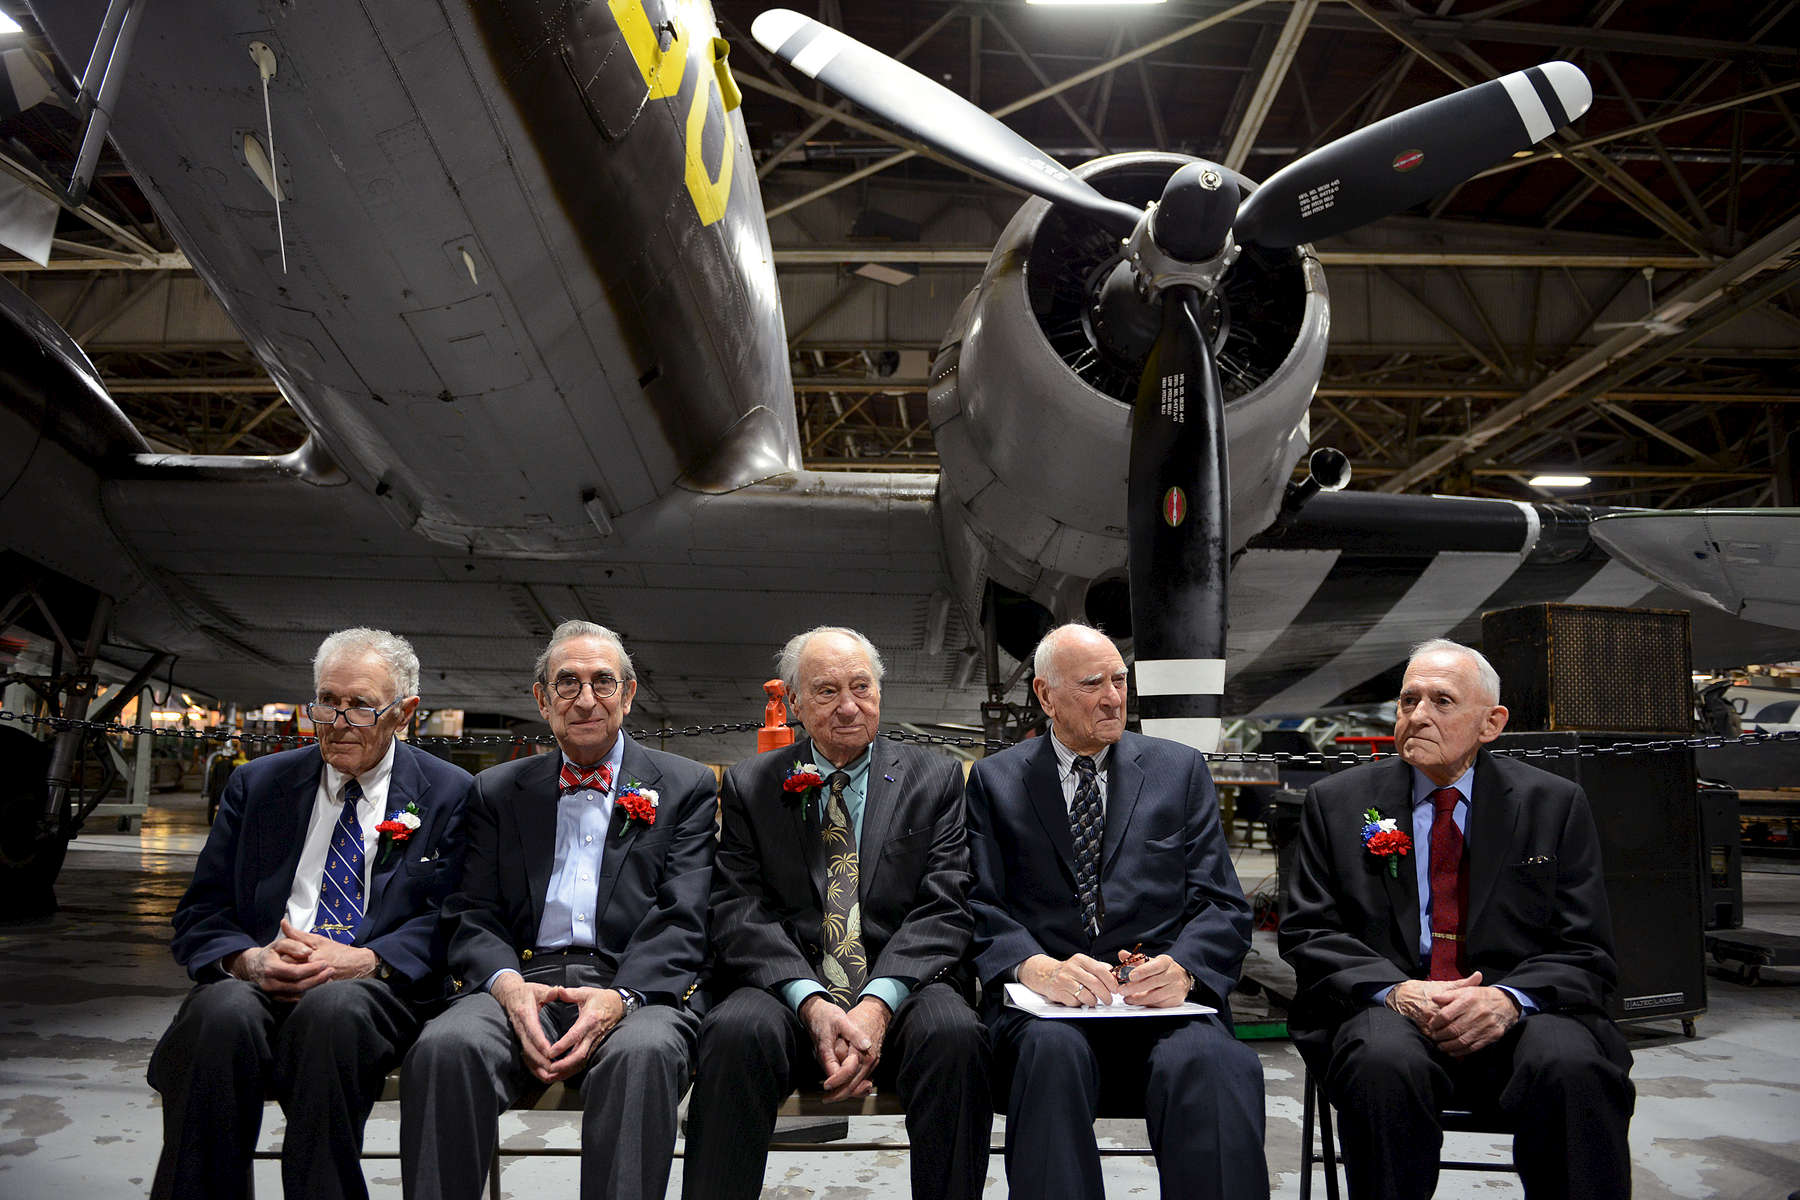 Federal Judges Thomas Platt, 87; I. Leo Glasser, 88; Leonard Wexler, 88; Jack Weinstein, 91 and Arthur Spatt, 86.Judges of the Eastern District of New York who were veterans of World War Two American Airpower Museum at Republic Ariport, Farmingdale, NY